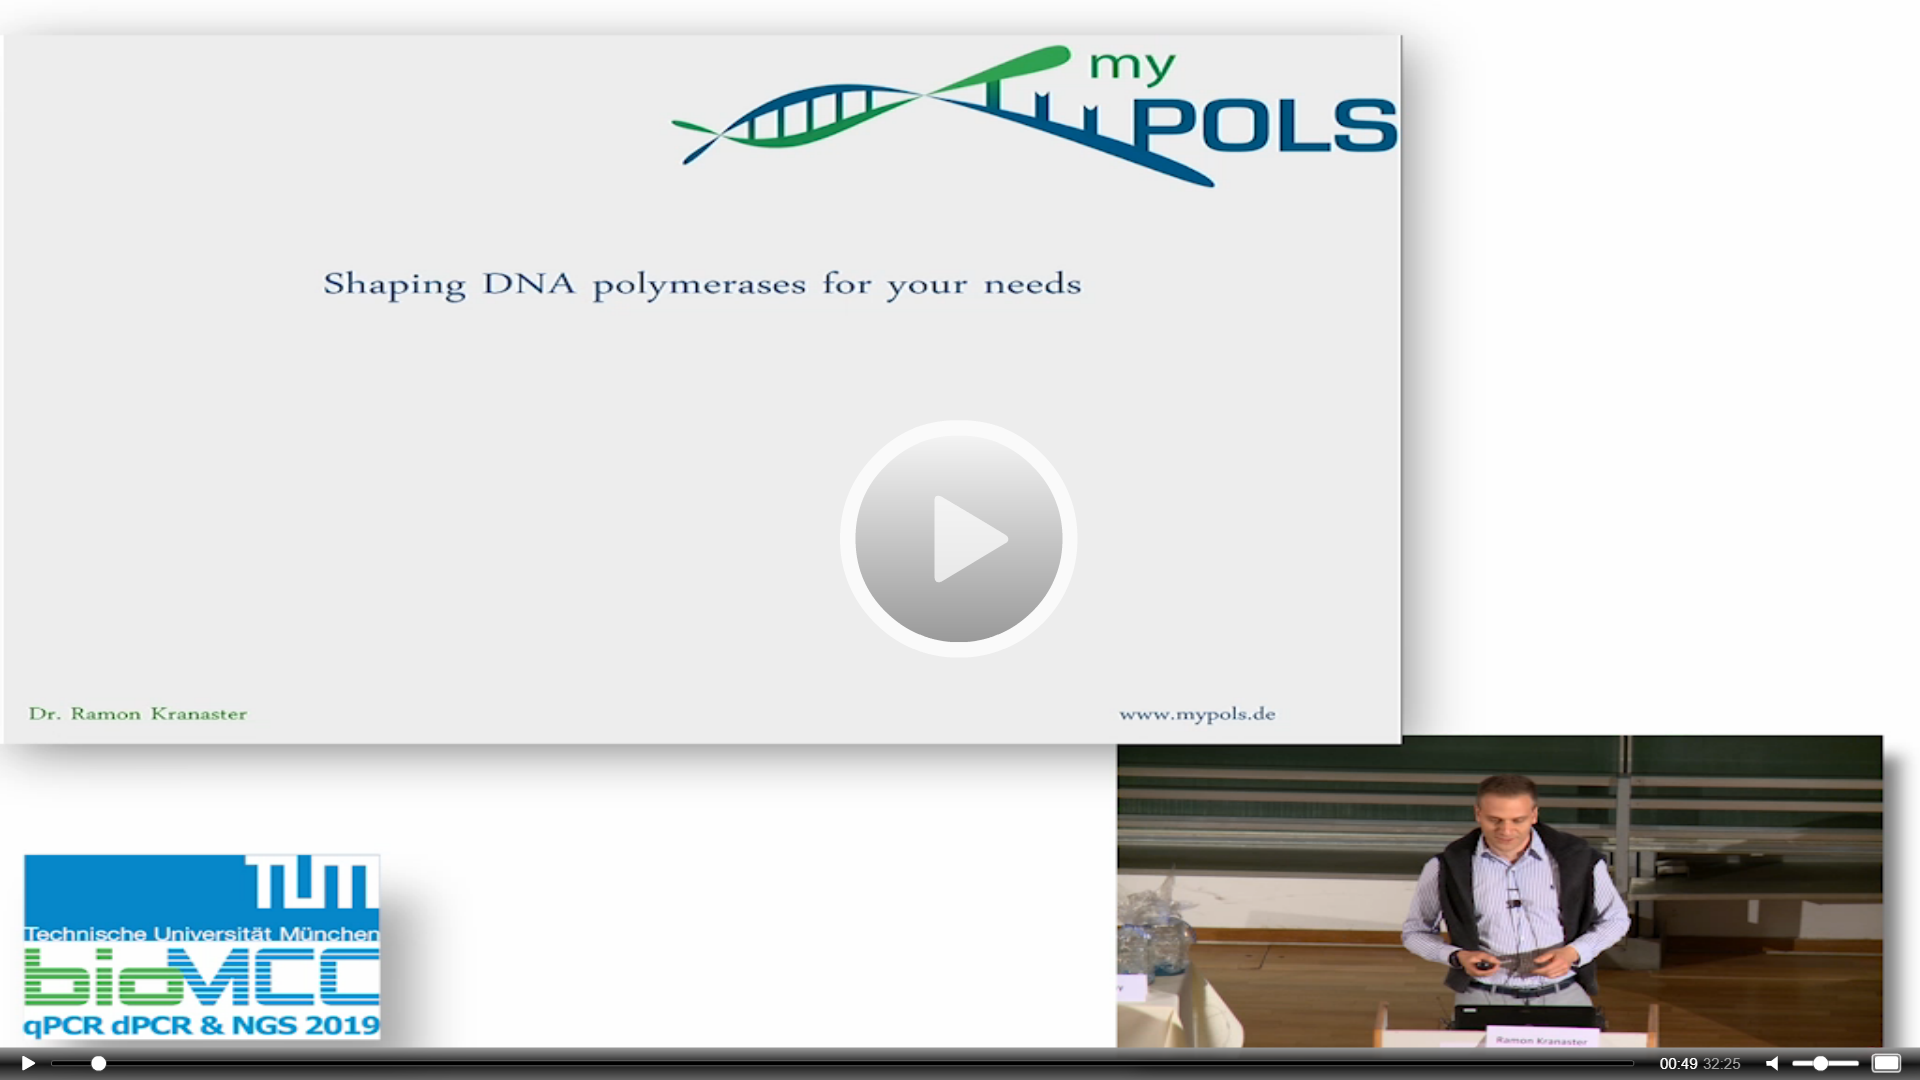 MyPOLS Biotec: Shaping DNA Polymerases For Your Needs